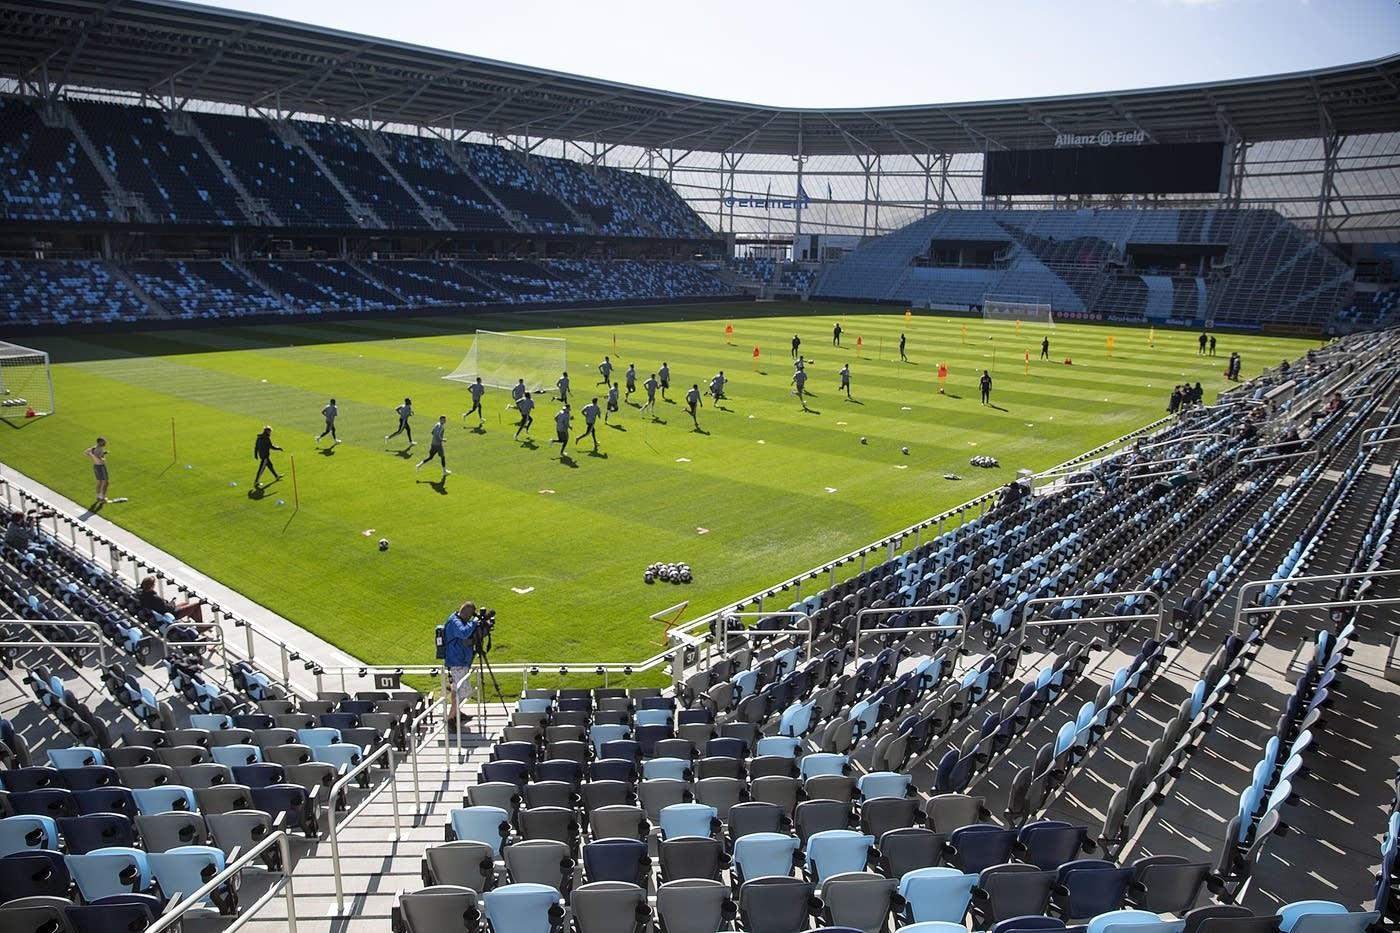 Minnesota United FC players practice at the new Allianz Field stadium.